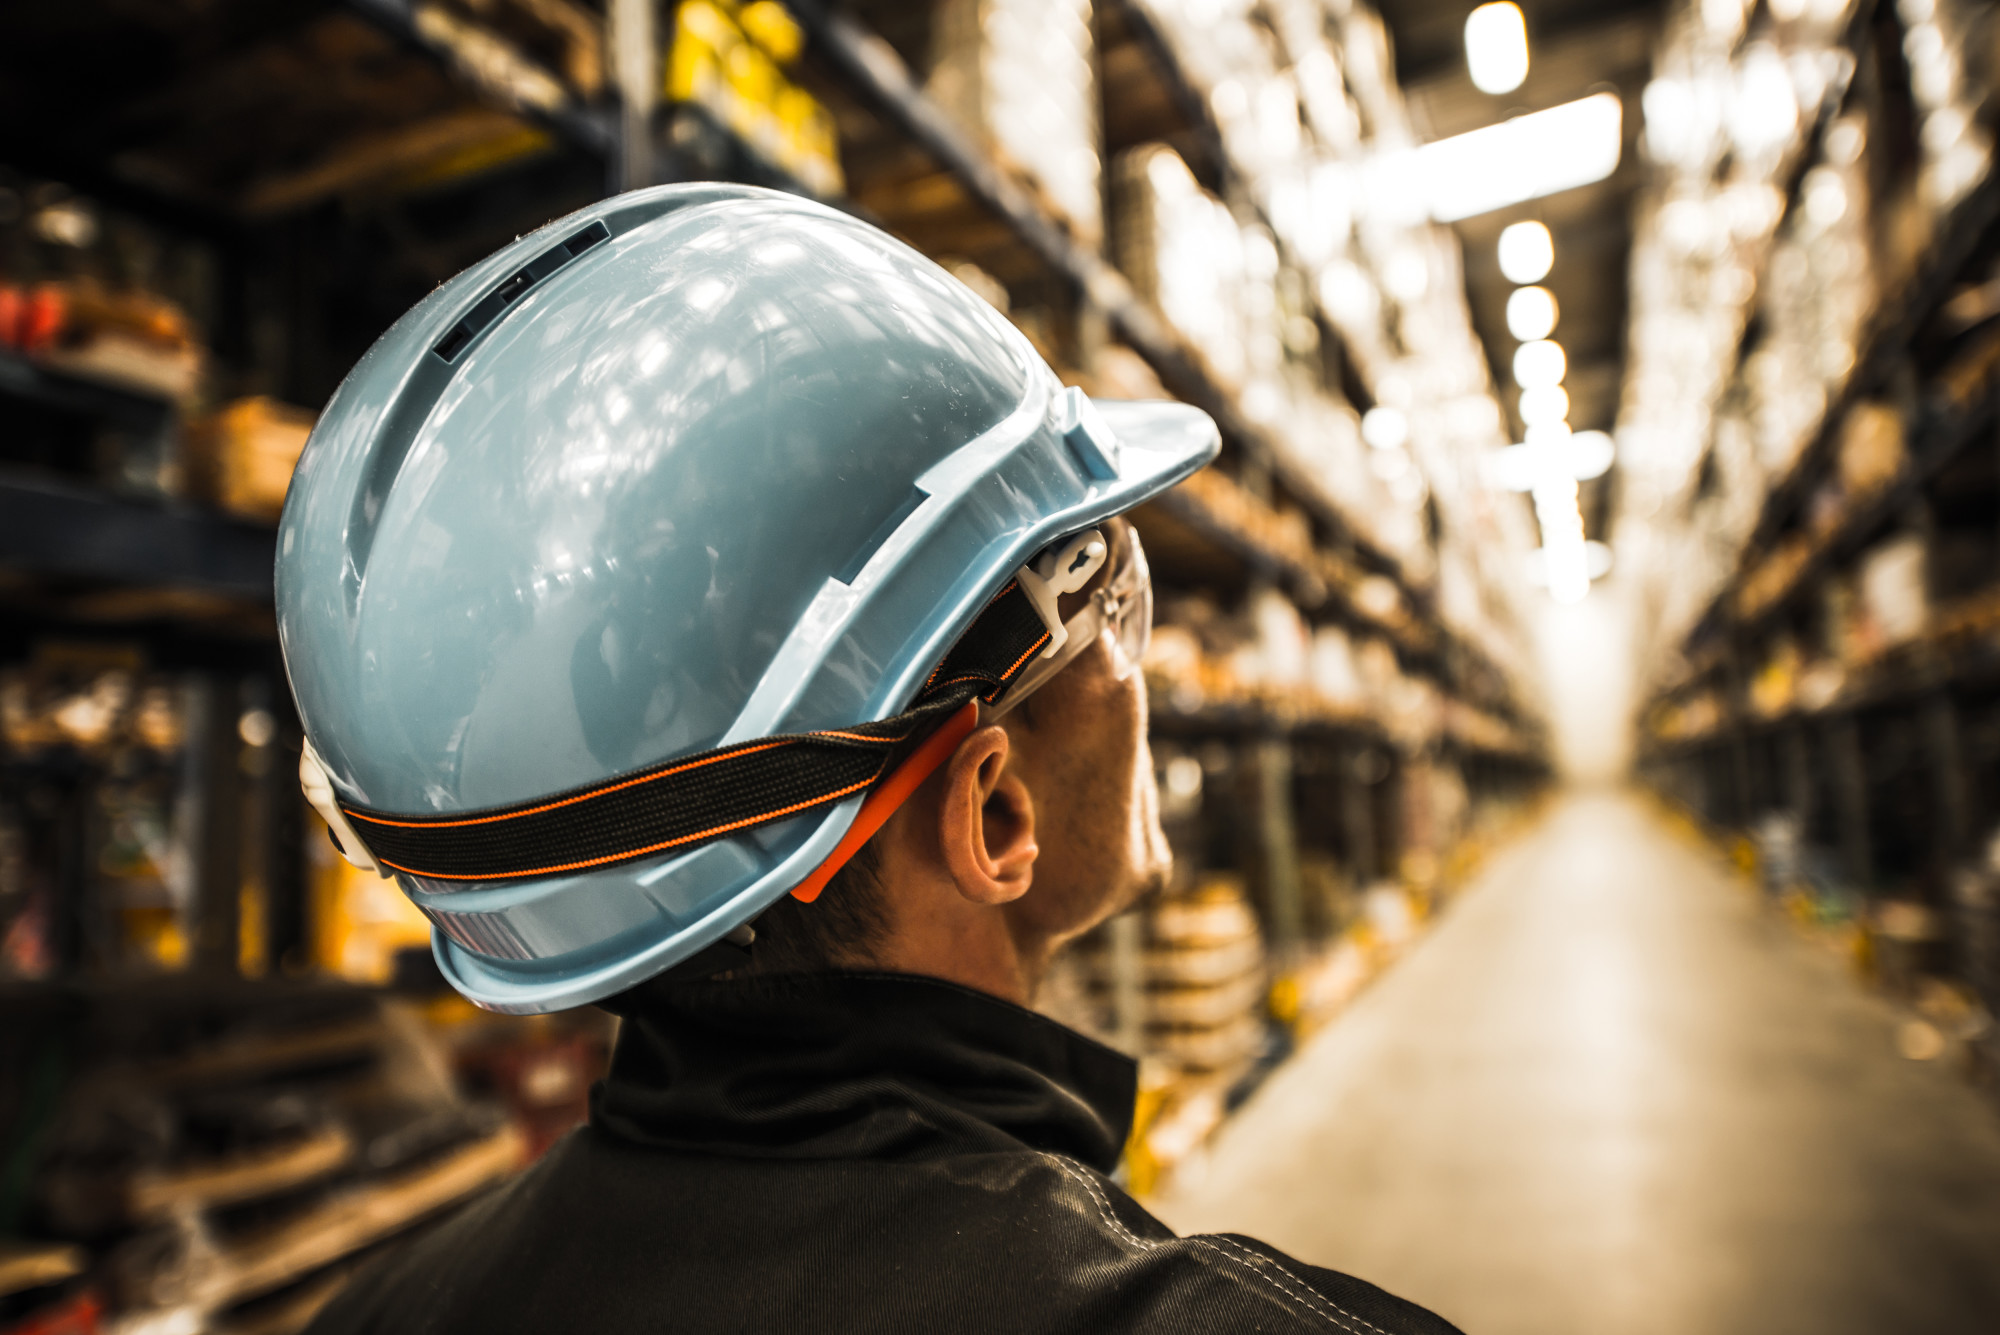 10 Factors to Consider When Choosing an MSDS Management Company